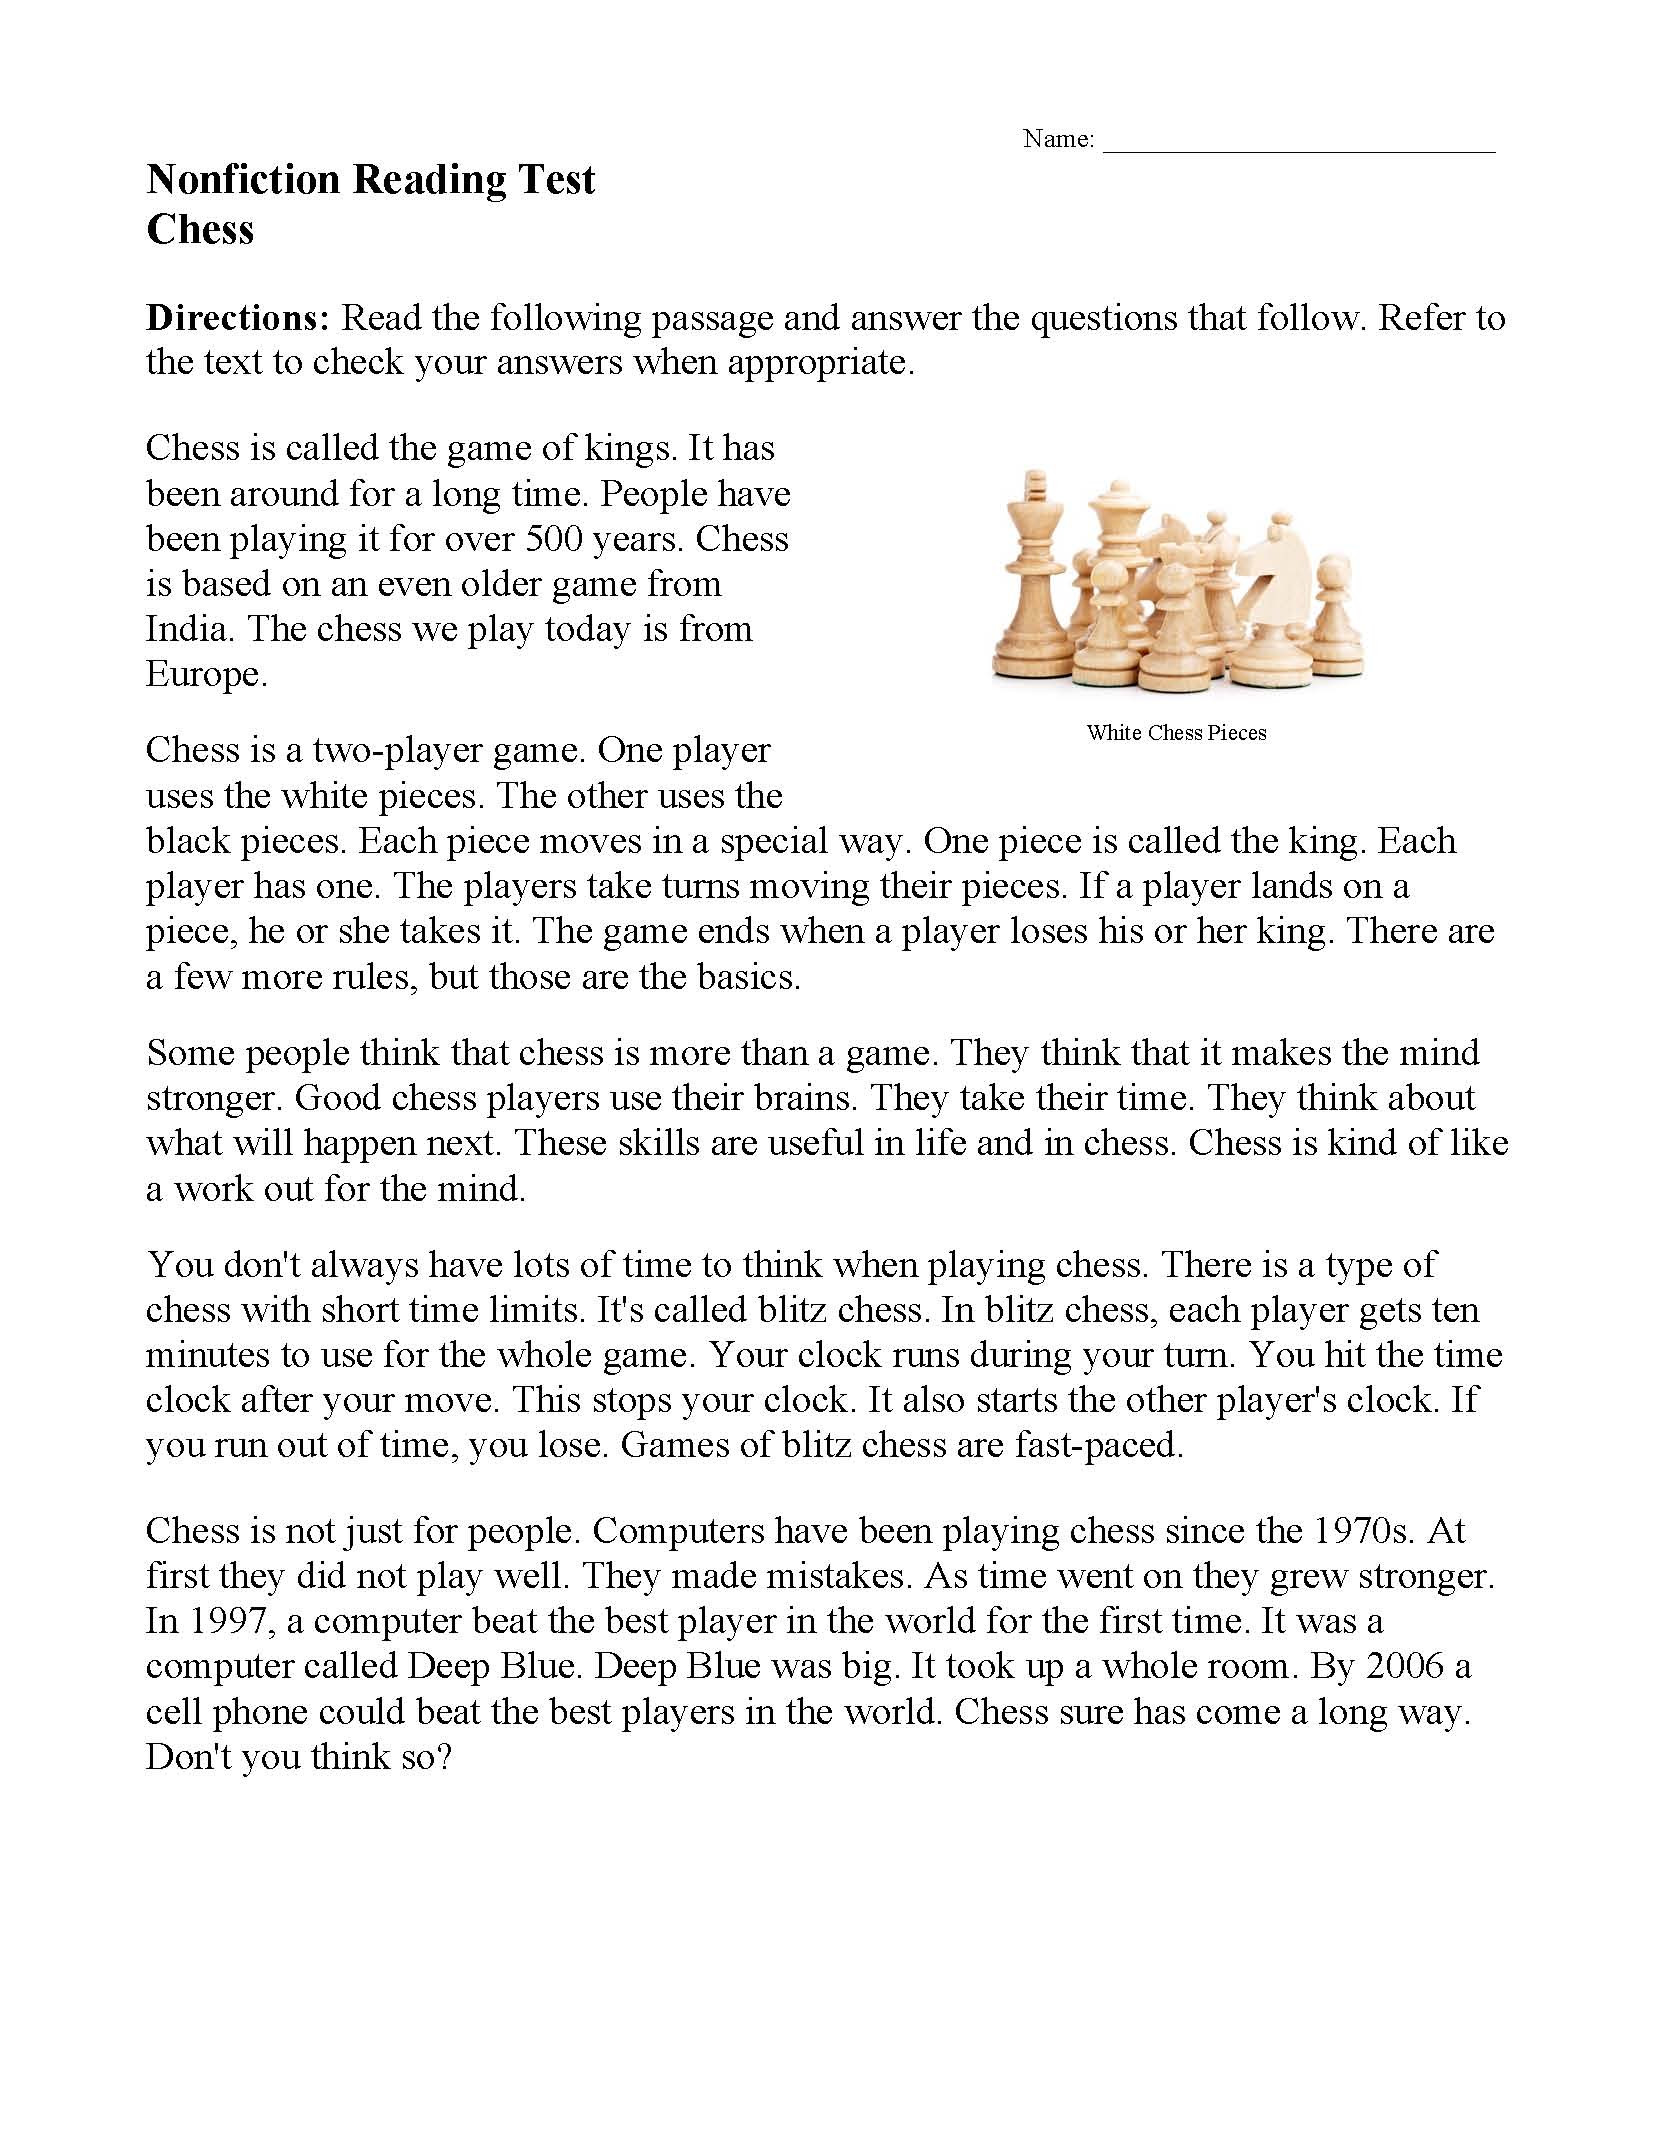 Reading Comprehension Informational Text Worksheets